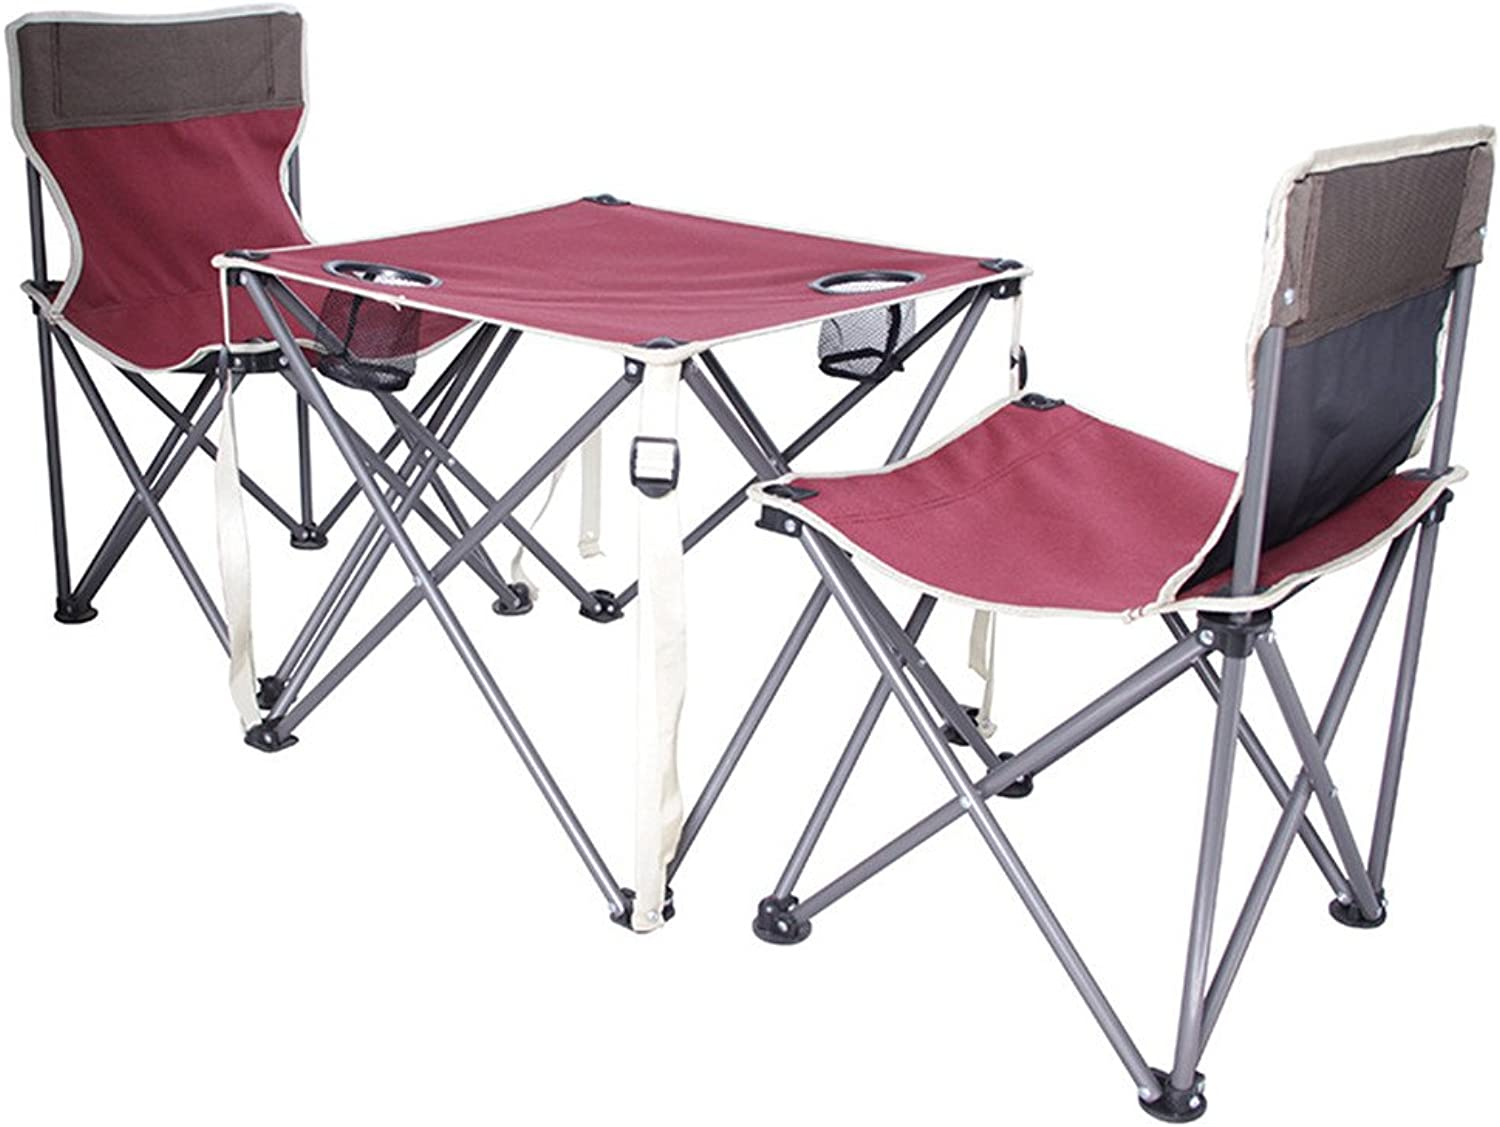 Outdoor Folding Three Pieces of Camping Tables and Chairs,Versatility